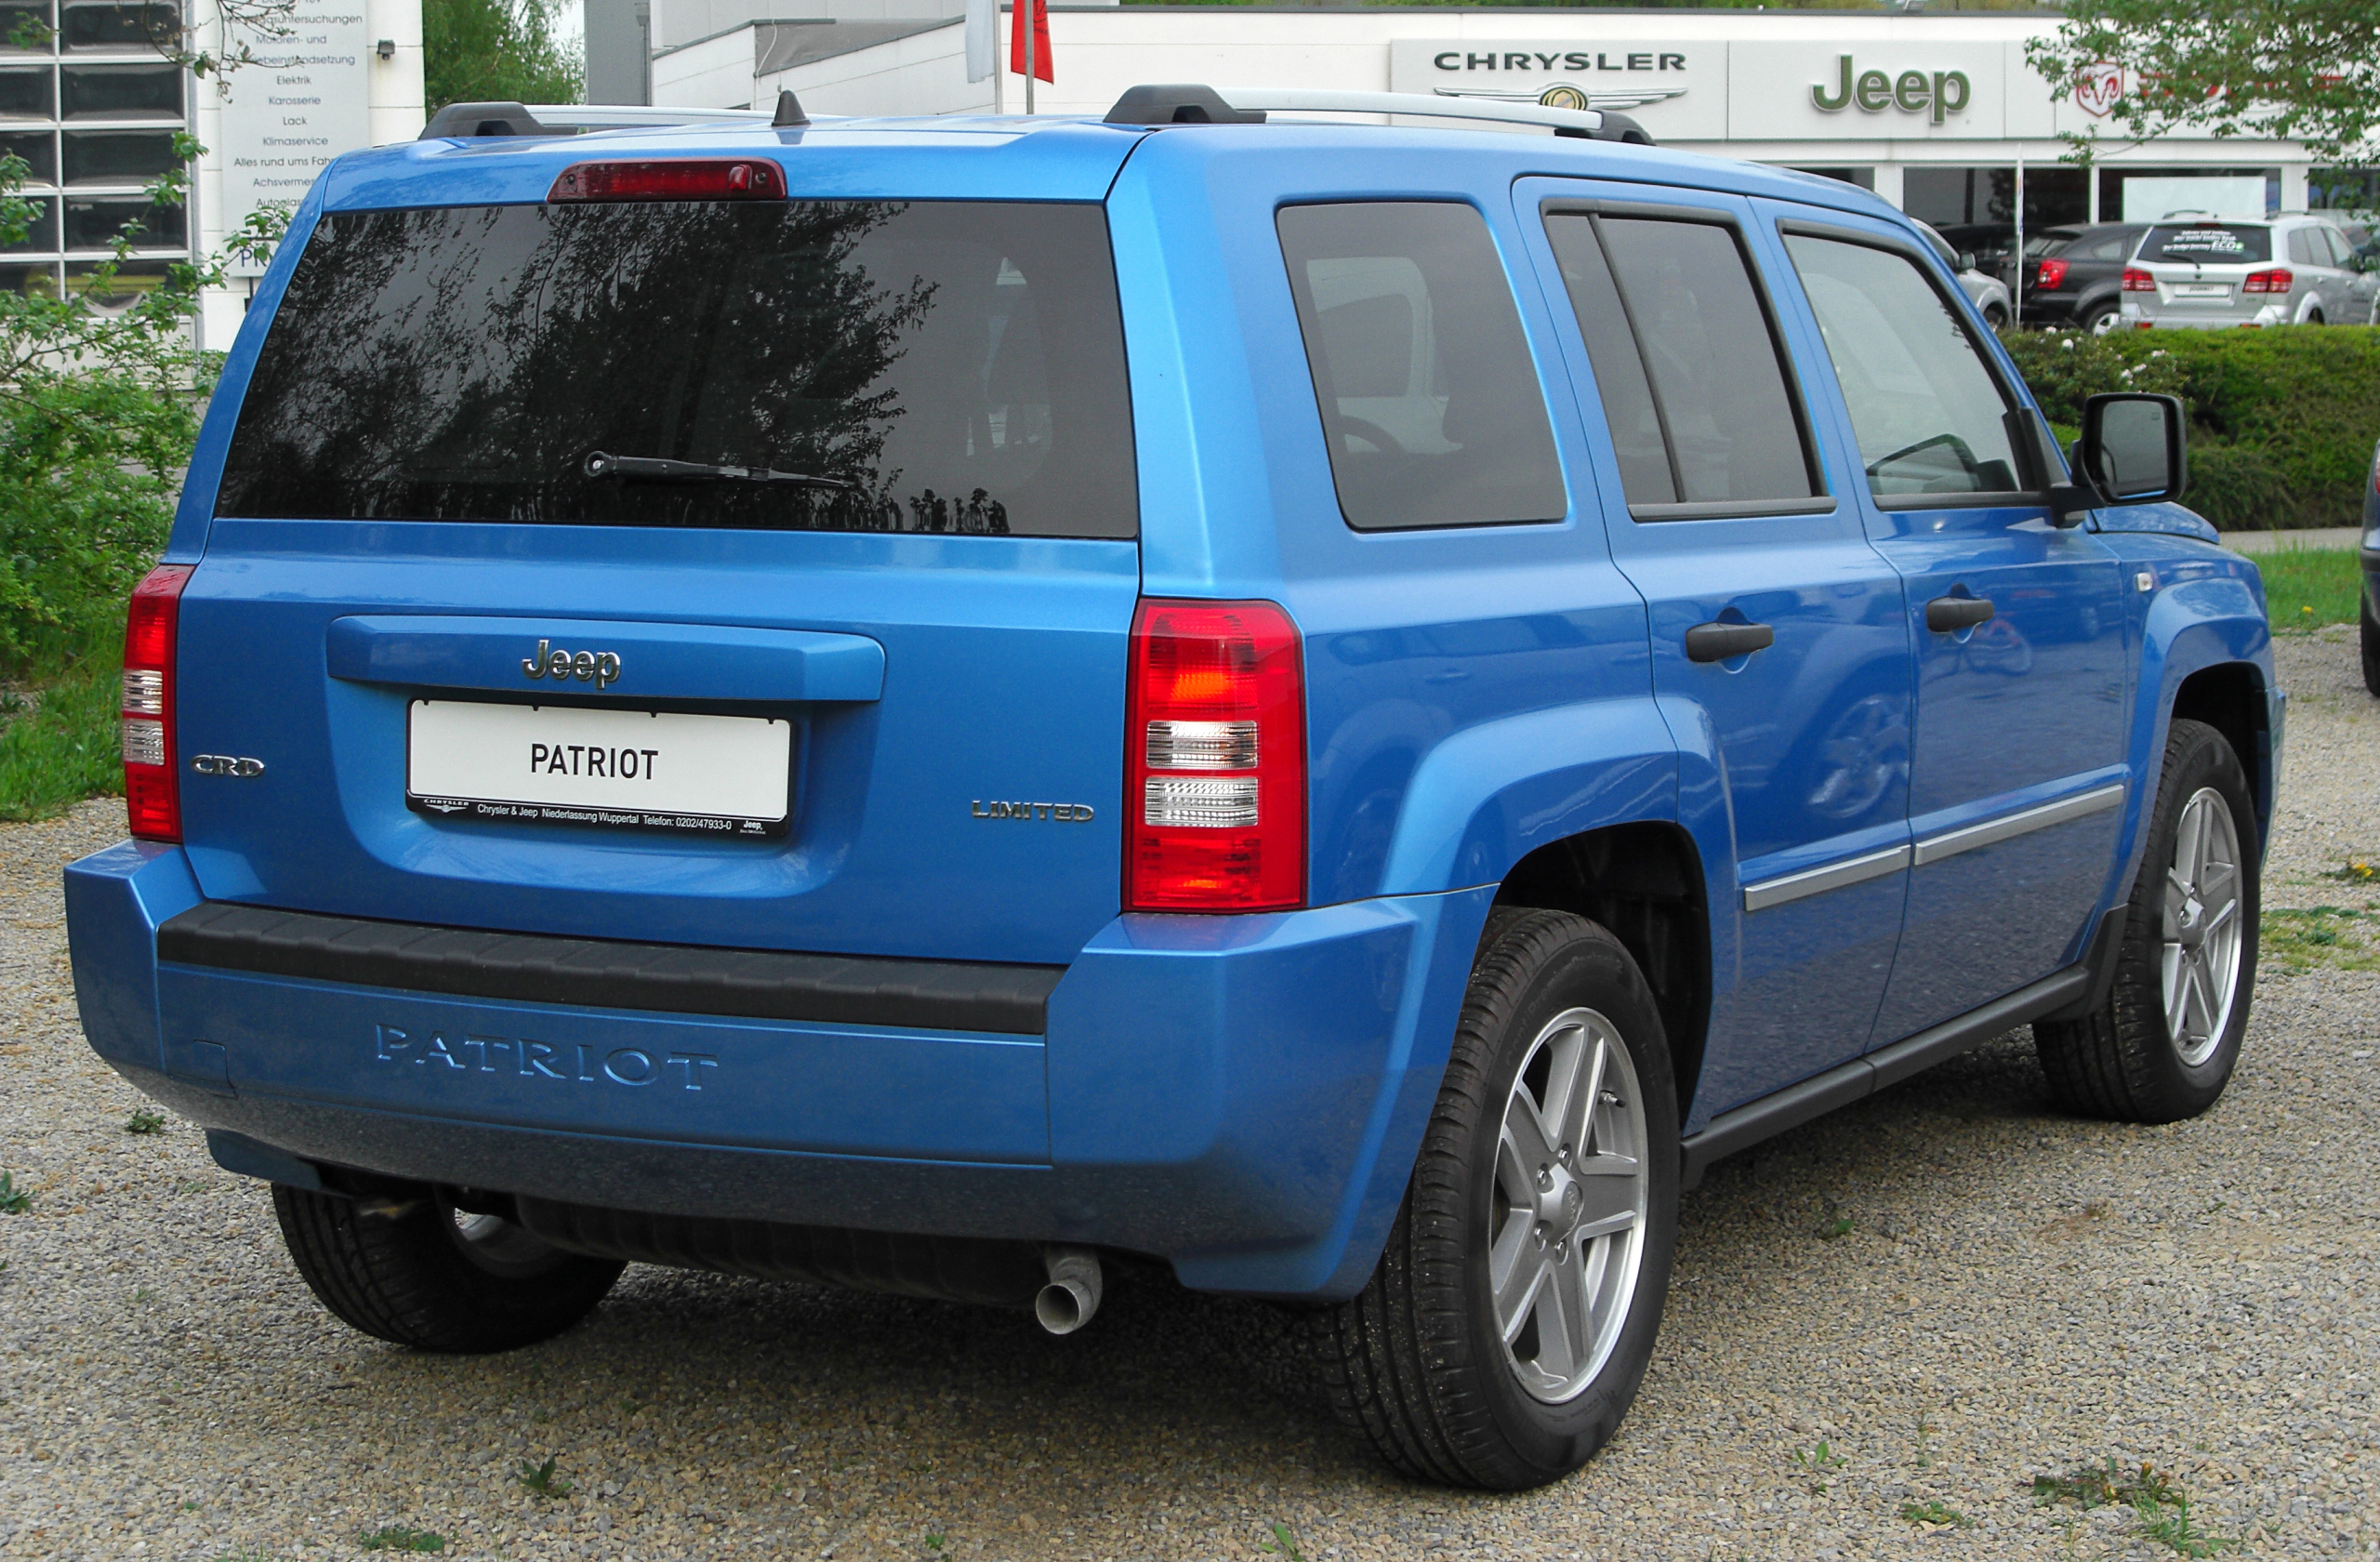 Patriot Buick Gmc >> 2010 Jeep Patriot - Information and photos - MOMENTcar